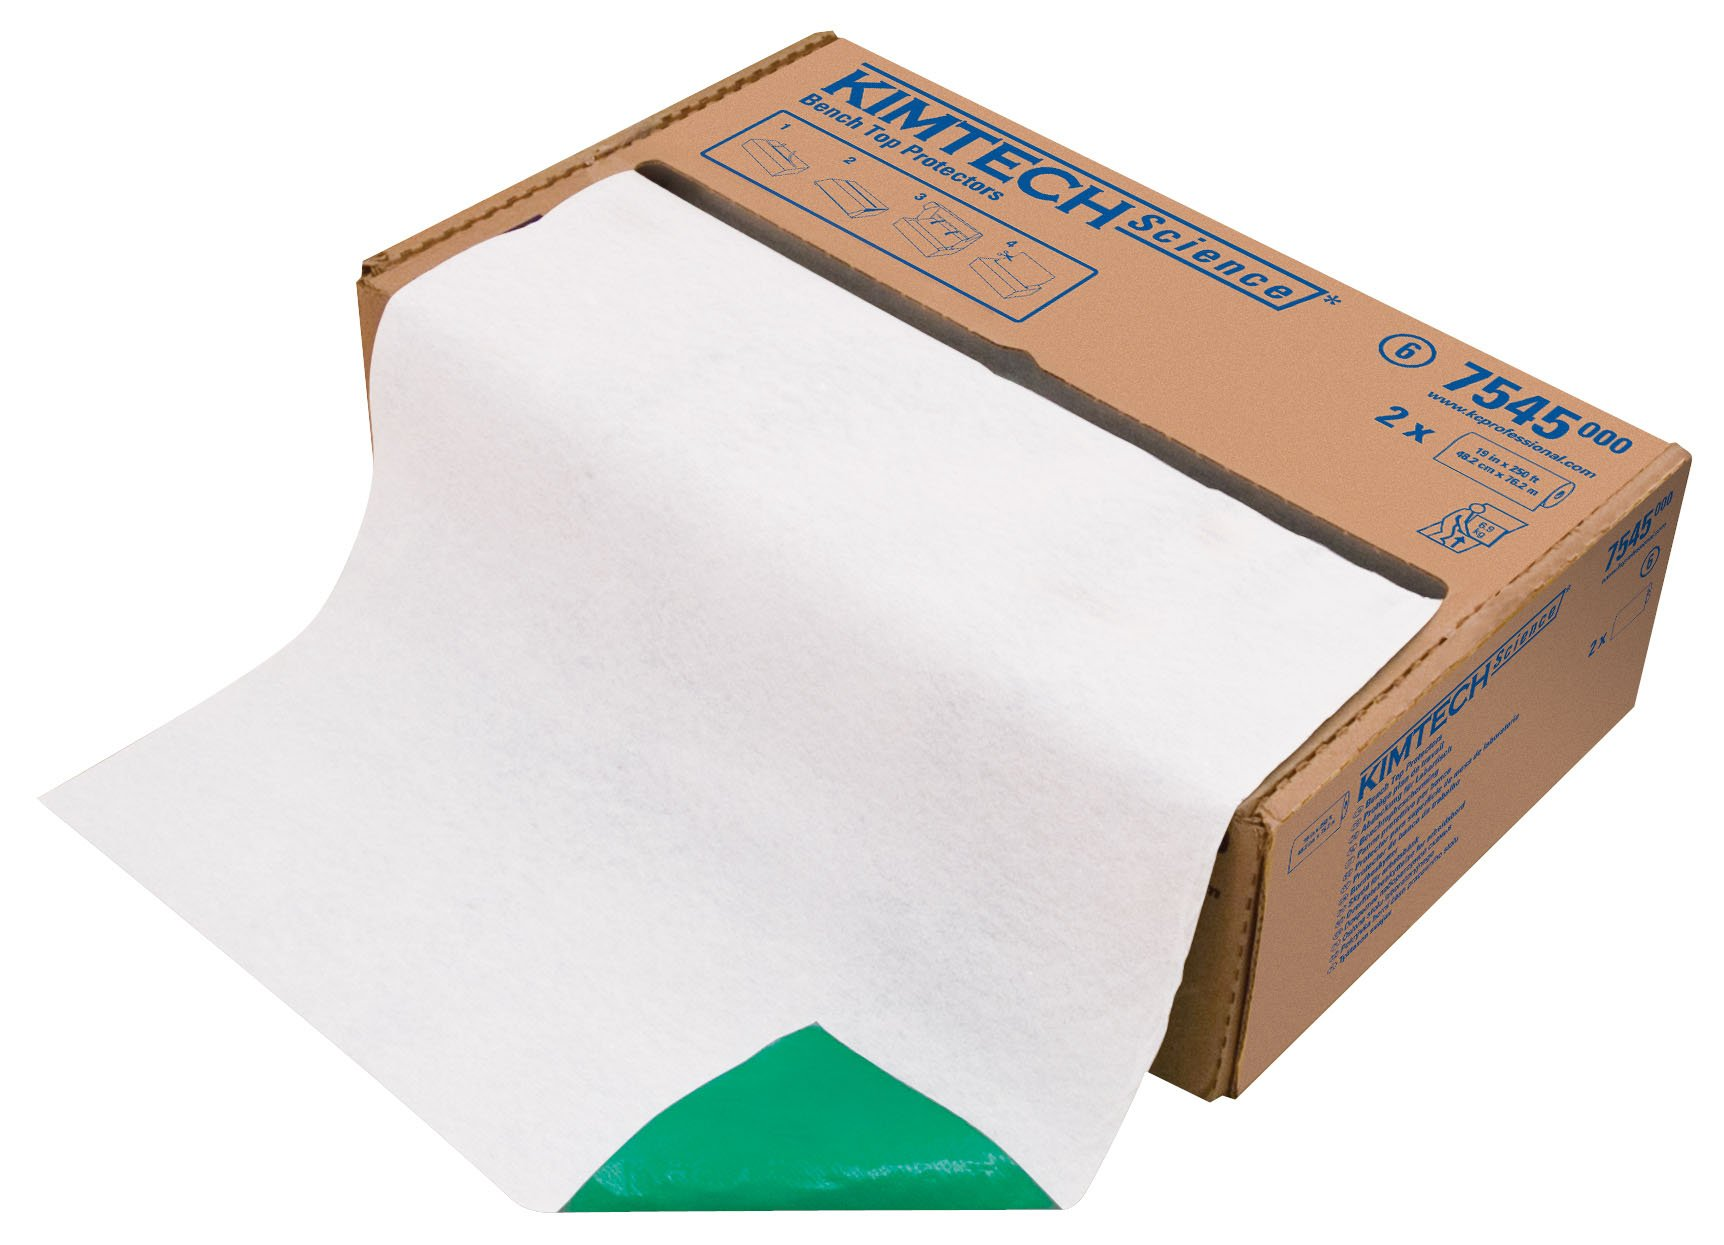 Kimberly-Clark Kimtech Science 75460 Bench Top Protector Disposable Wiper Sheet, 19-1/2'' Length x 18'' Width (8 Bags of 50)